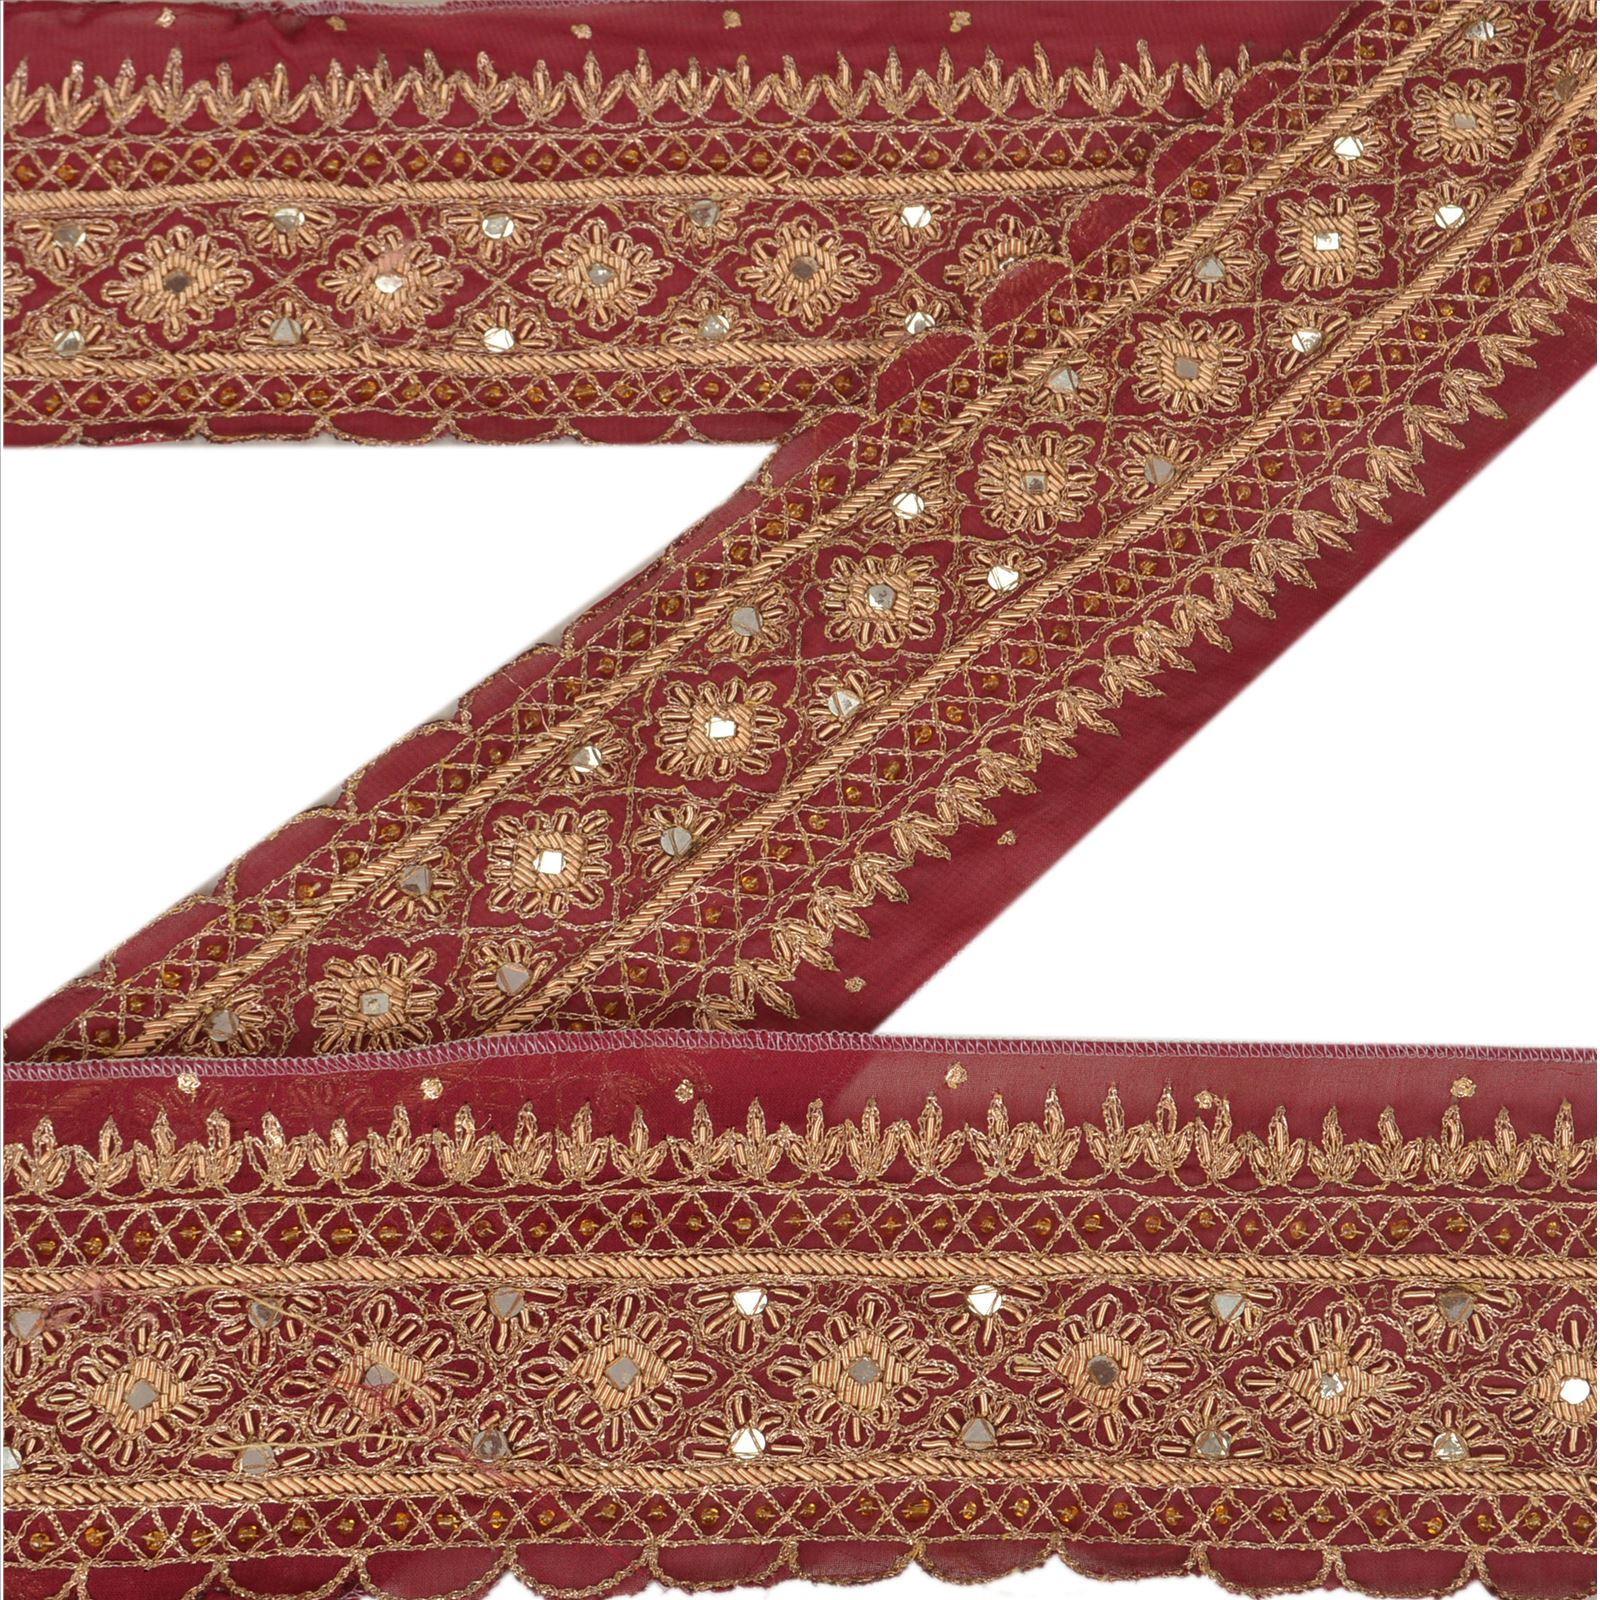 Lace, Crochet & Doilies Just Vintage Sari Border Antique Hand Beaded Indian Trim Sewing Maroon Lace Easy To Use